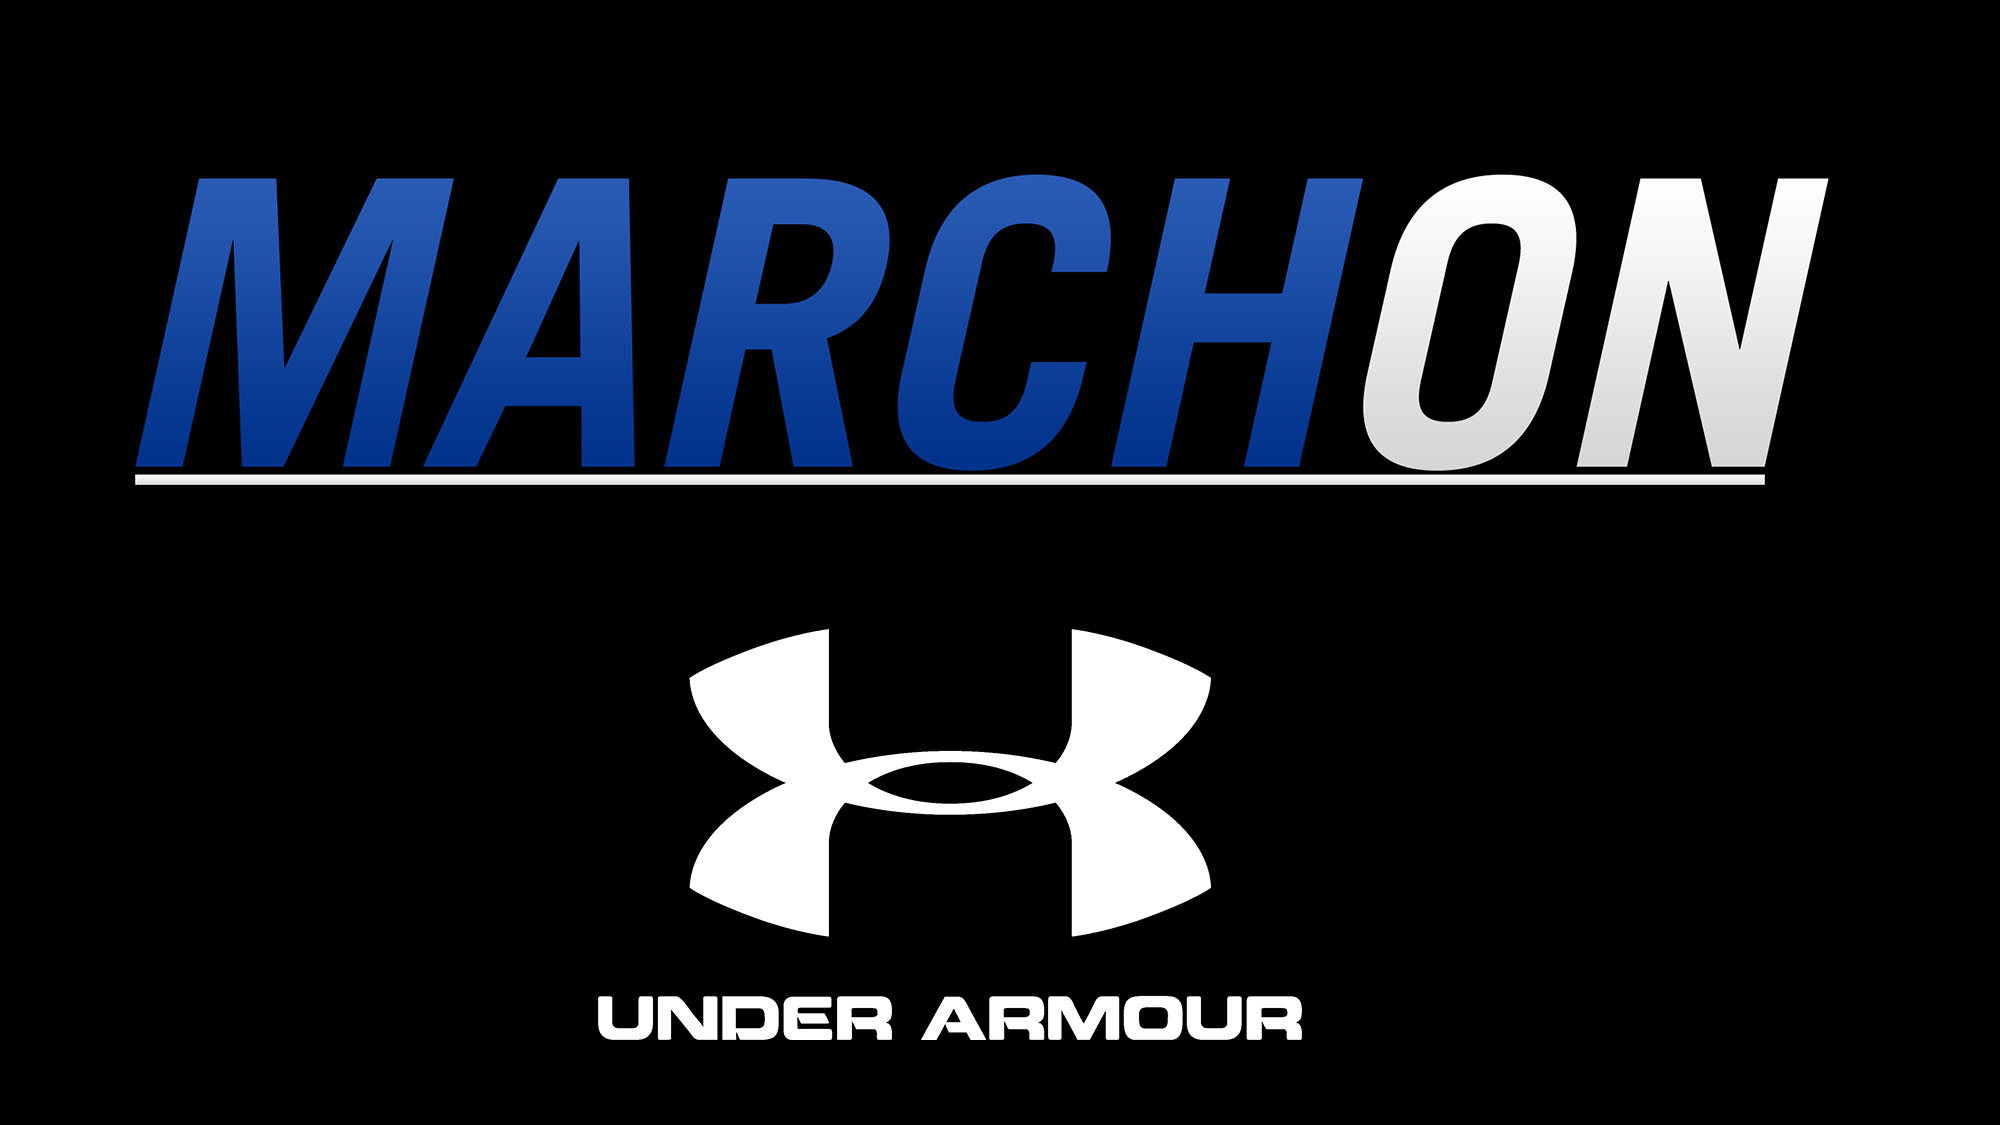 03ae38de5 Under Armour Named Official Outfitter Of Sycamore Athletics ...